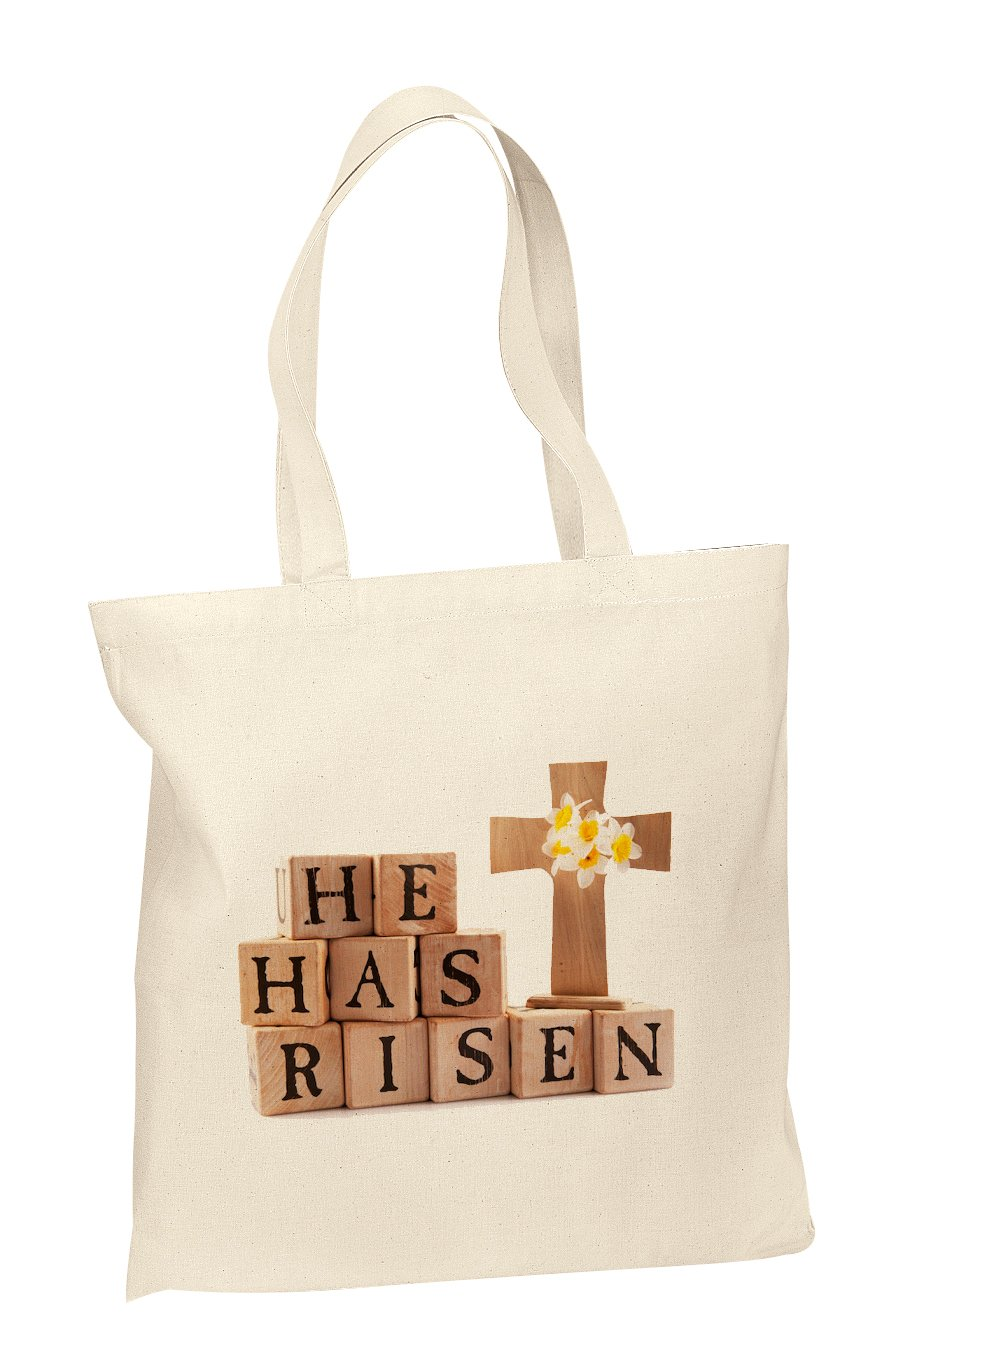 Amazon cotton tote bags custom easter gift bags easter tote amazon cotton tote bags custom easter gift bags easter tote bag he has risen religious easter bag handmade negle Images